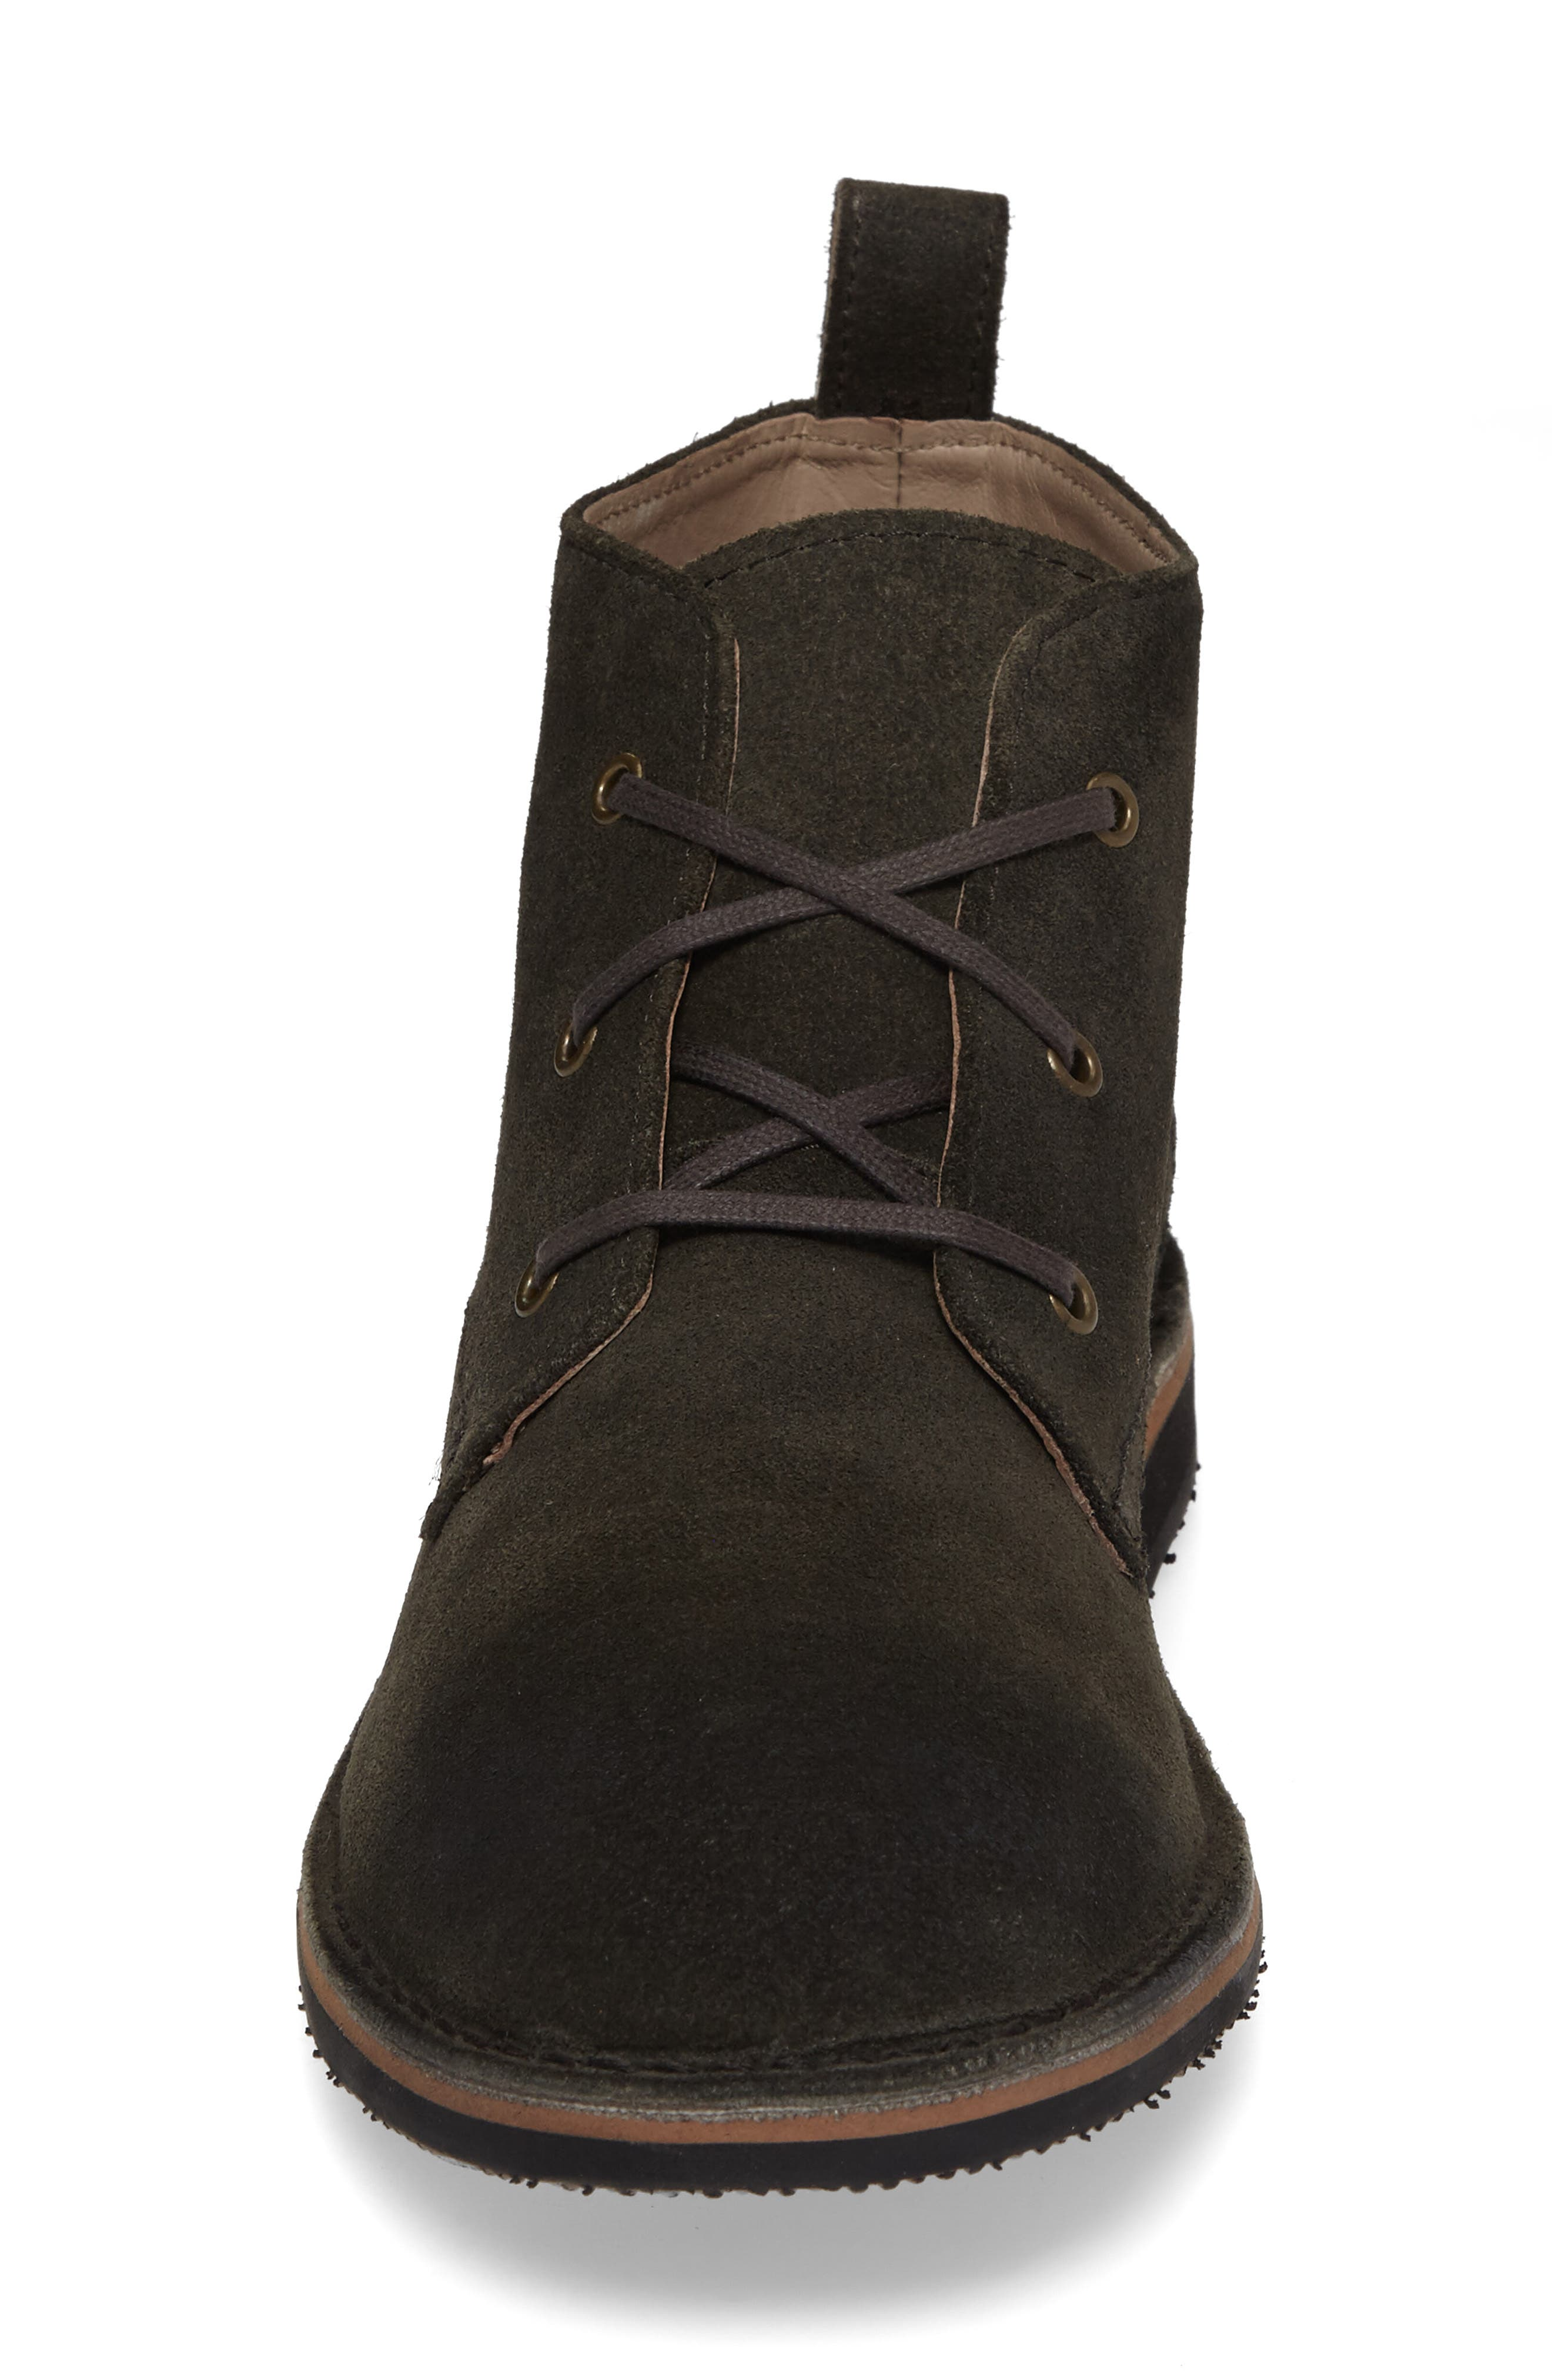 Dorchester Chukka Boot,                             Alternate thumbnail 4, color,                             OXIDE/ DEEP NATURAL SUEDE